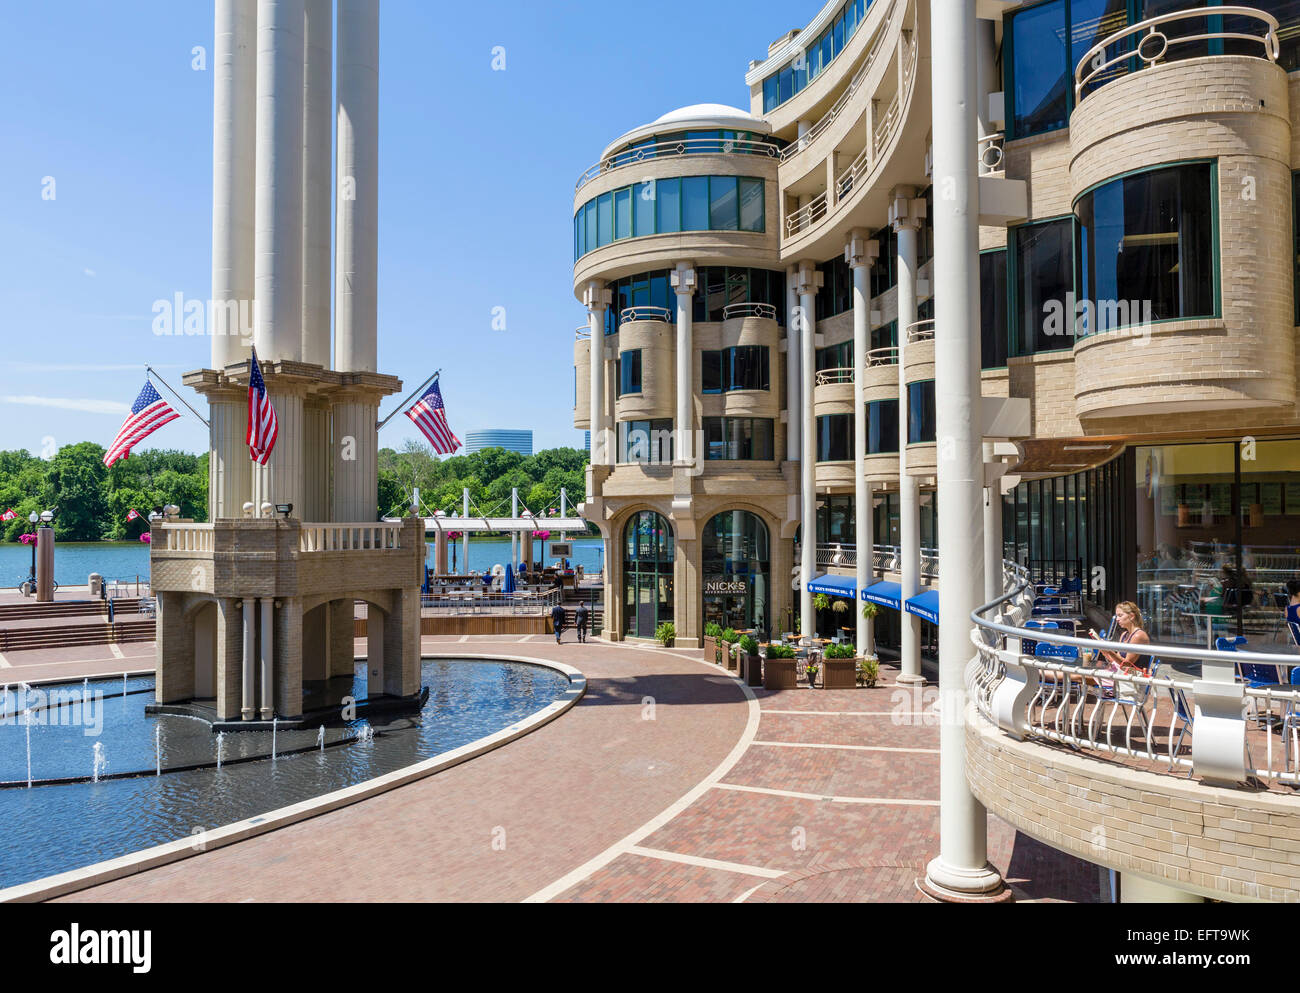 Waterfront Cafes And Restaurants In The Washington Harbor